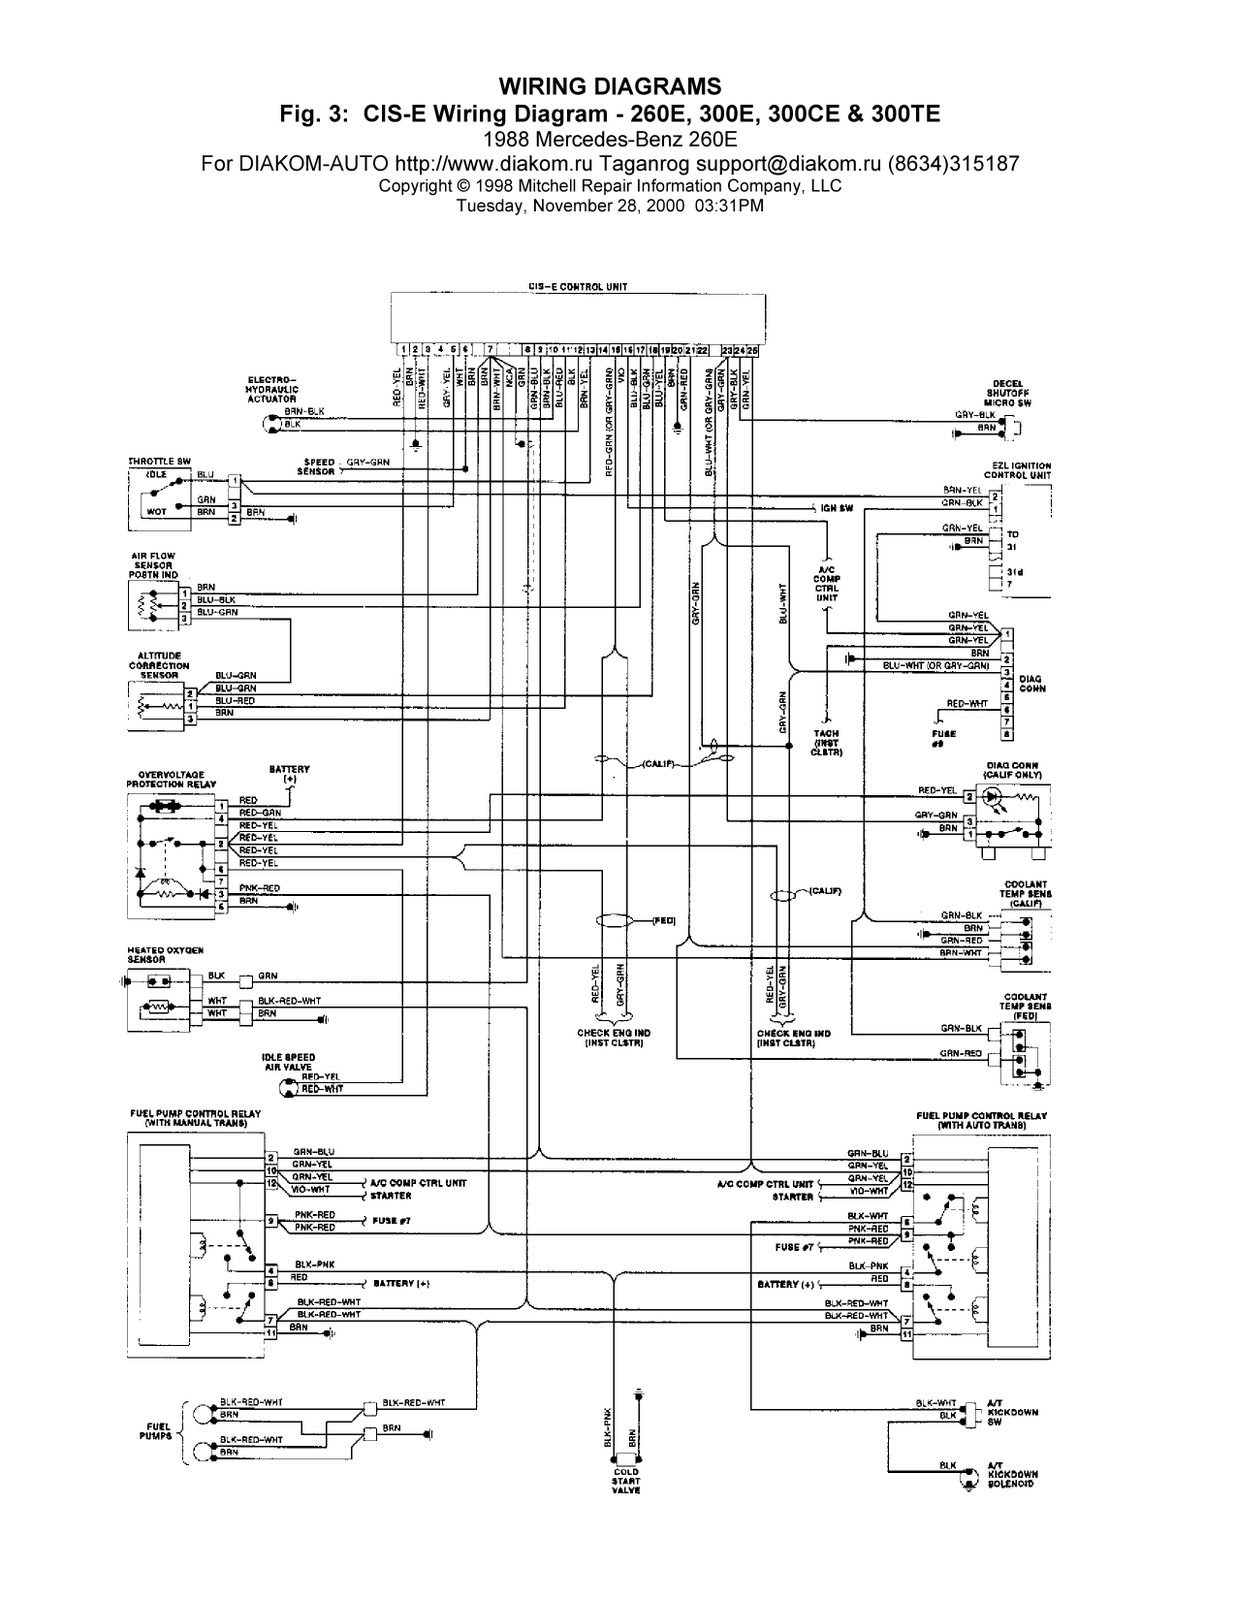 medium resolution of 2001 ml320 fuse diagram wiring diagram g92000 benz ml320 fuse diagram wiring diagrams cks 07 mercedes